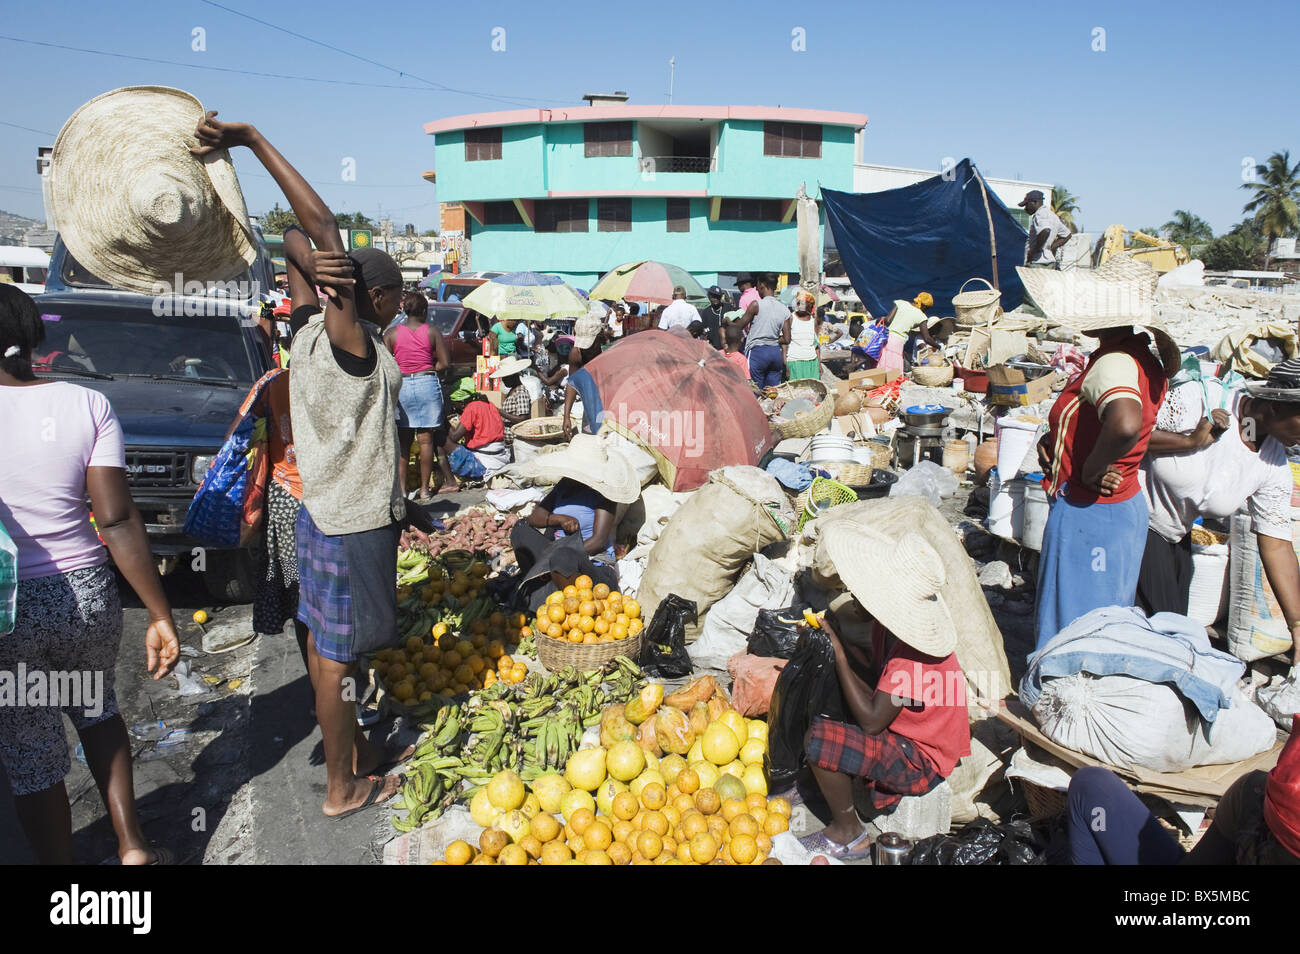 Street market, Port au Prince, Haiti, West Indies, Caribbean, Central America - Stock Image